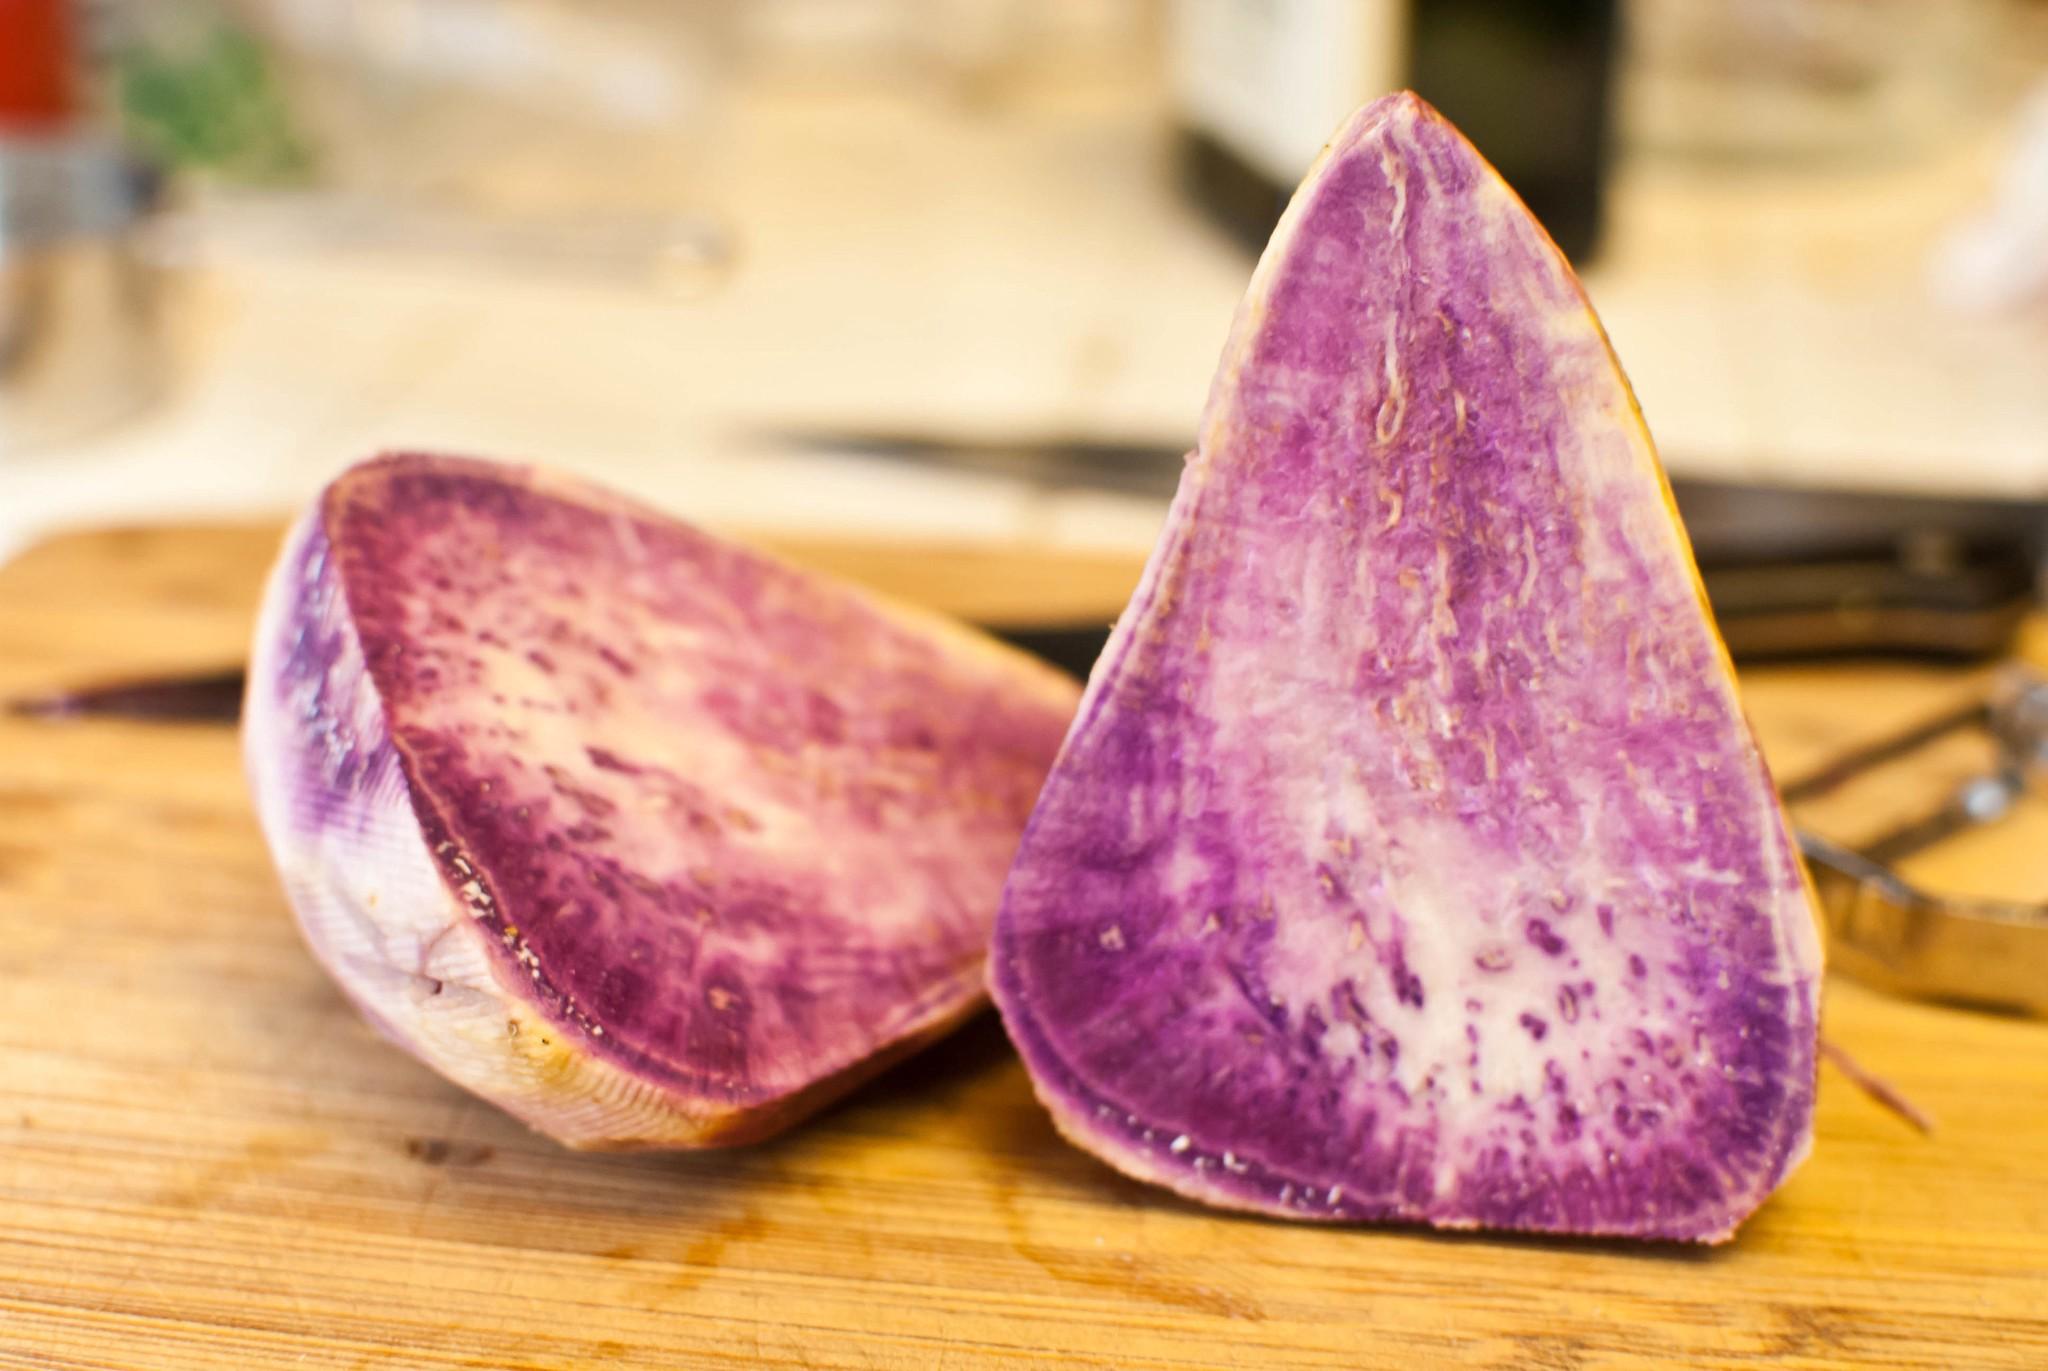 Two halves of a pear-shaped Okinawa sweet potato on a timber board with the white-streaked purple flesh exposed.